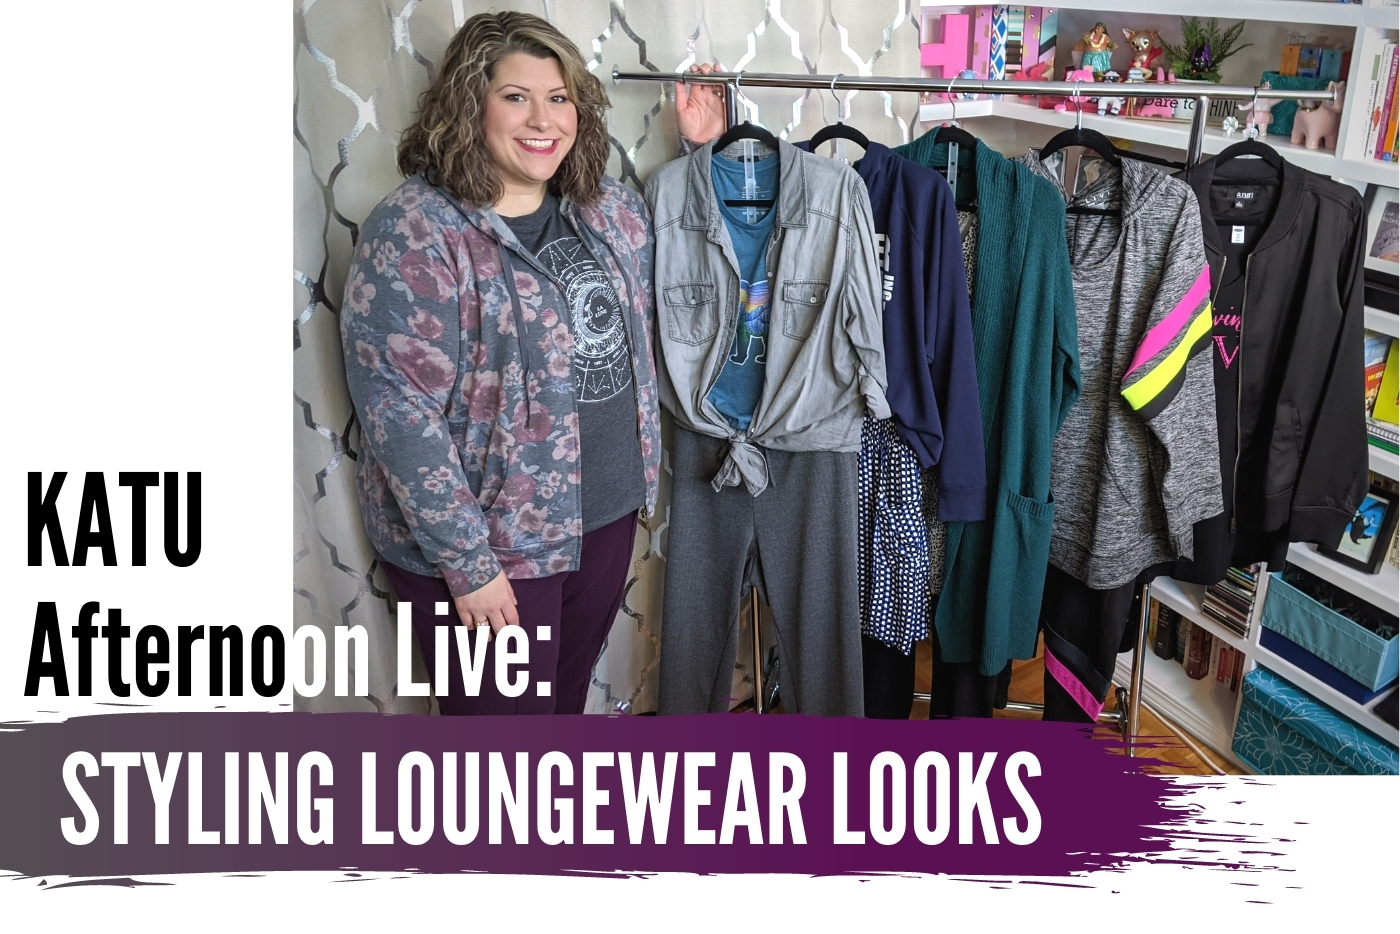 KATU Afternoon Live:  Styling Loungewear Looks